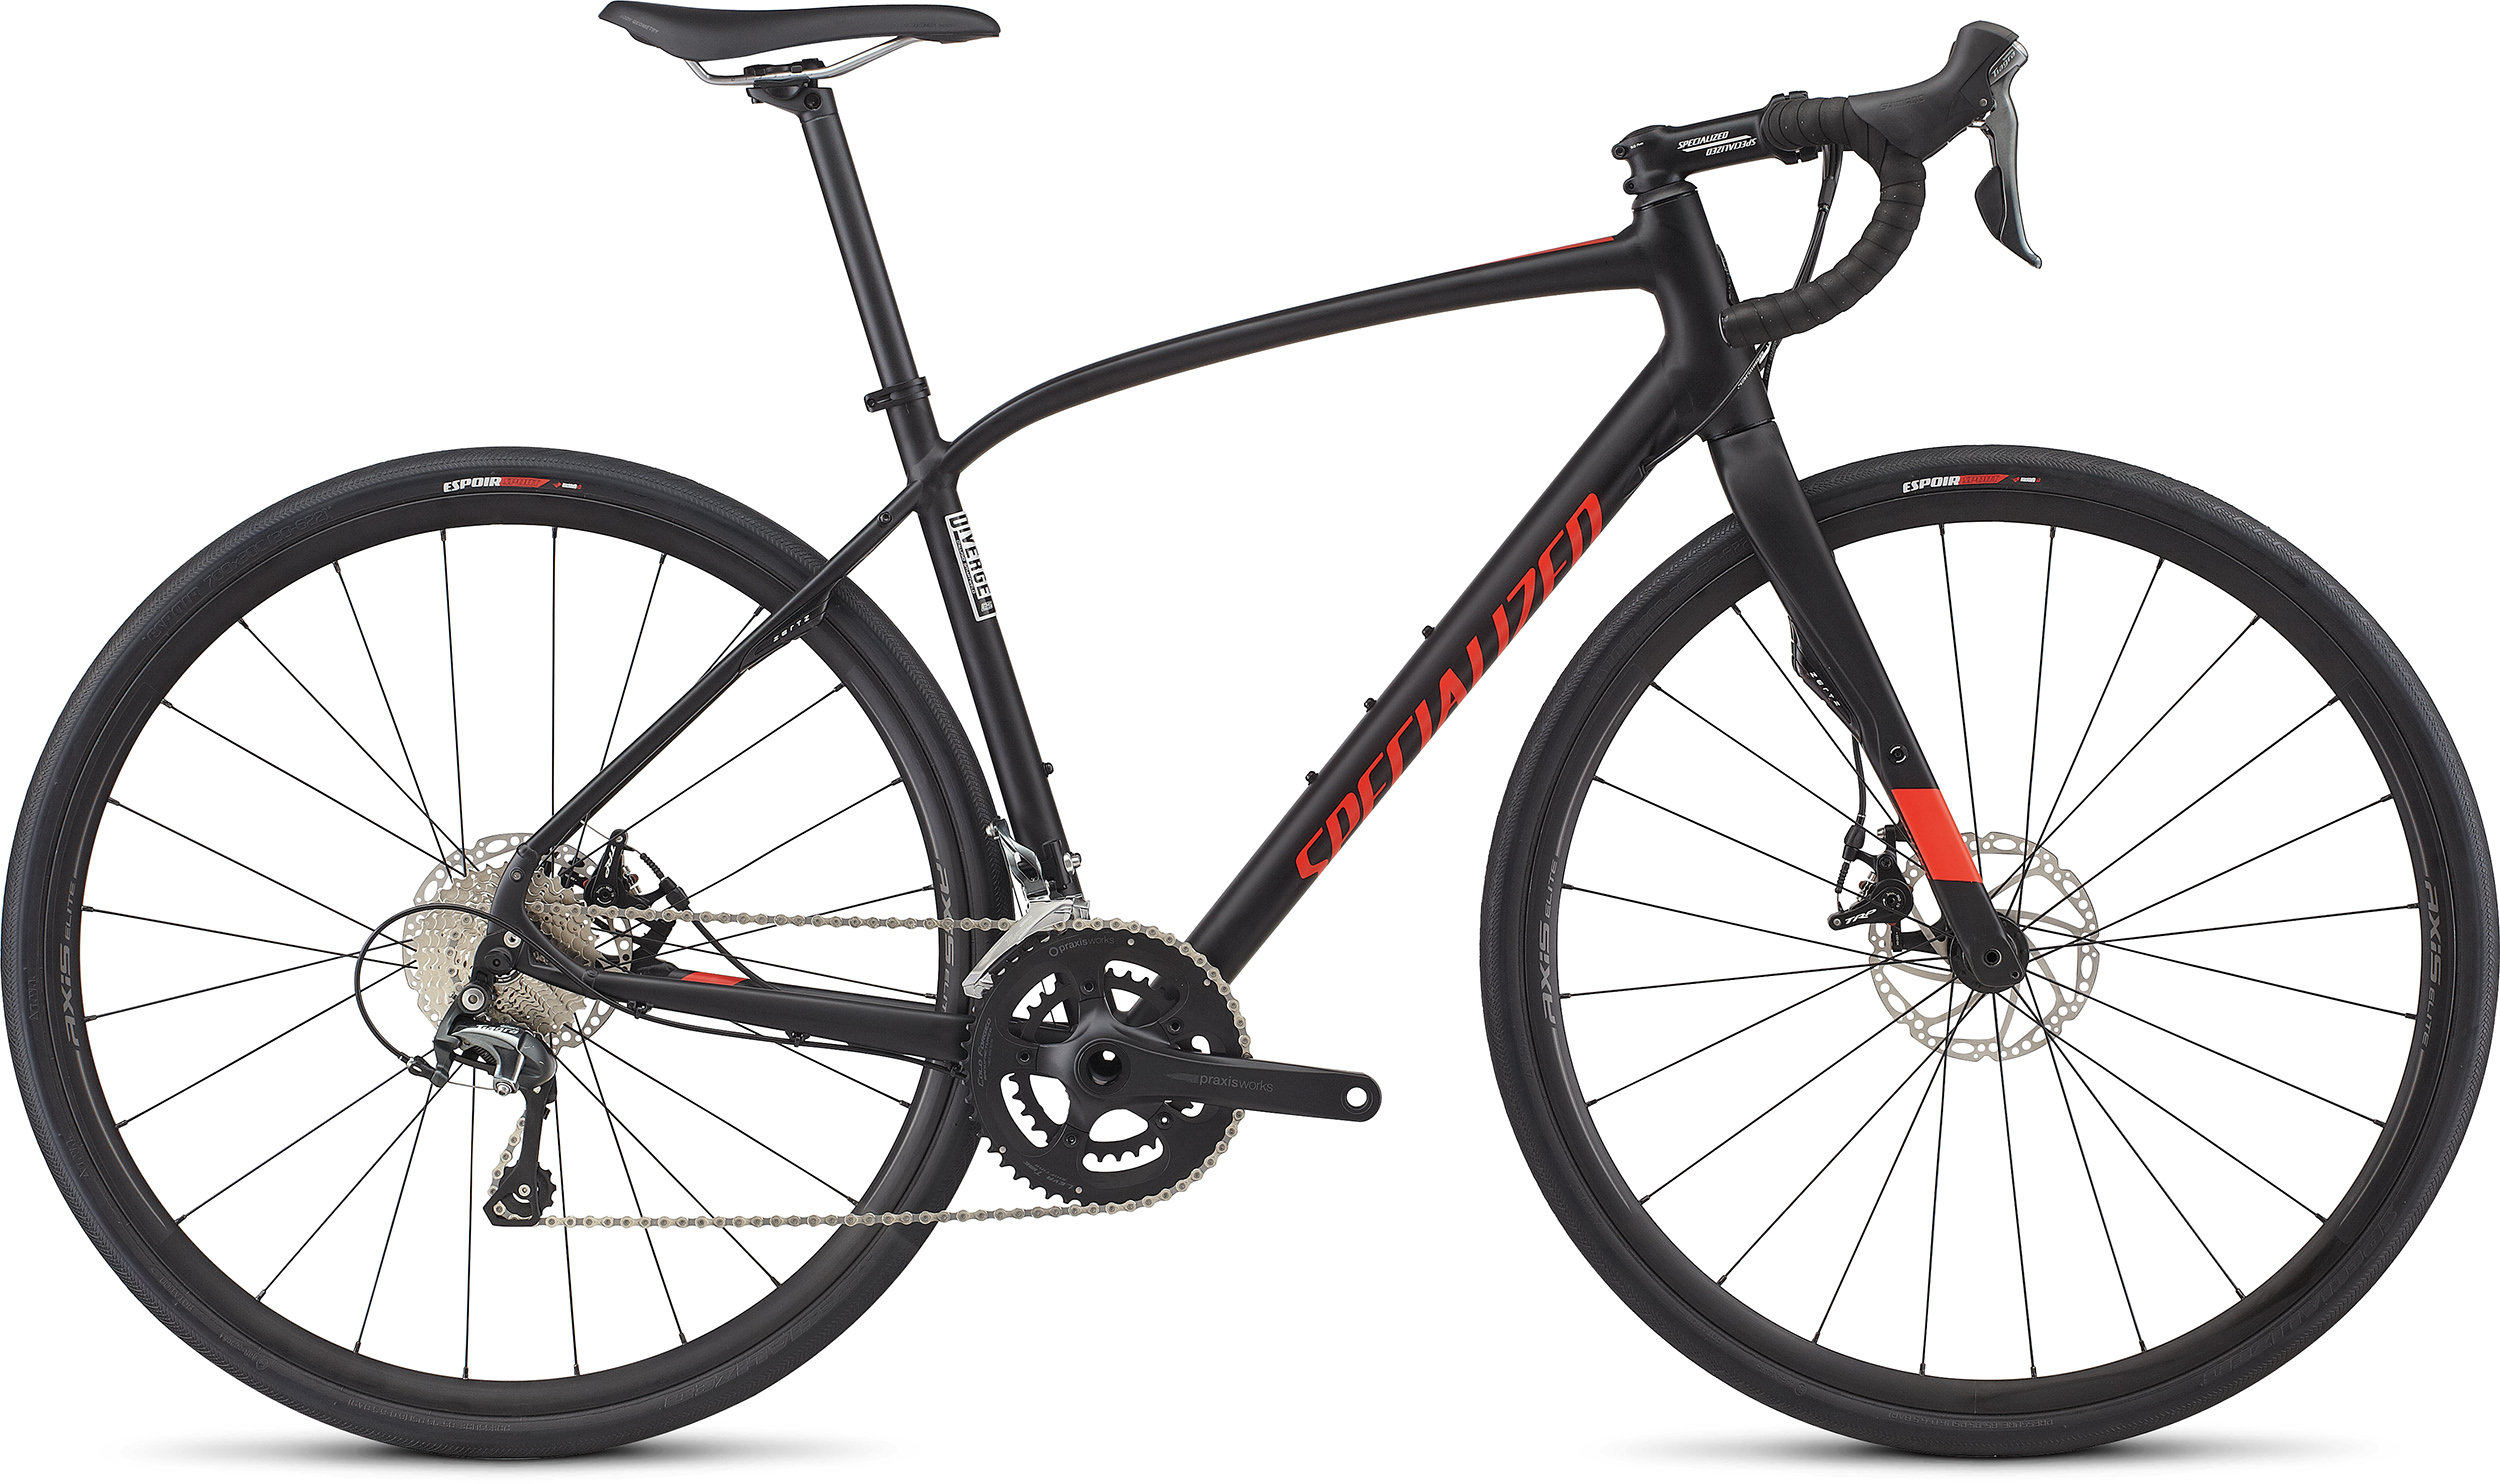 SPECIALIZED DIVERGE ELITE DSW BLK/RKTRED 49 - Bike Zone